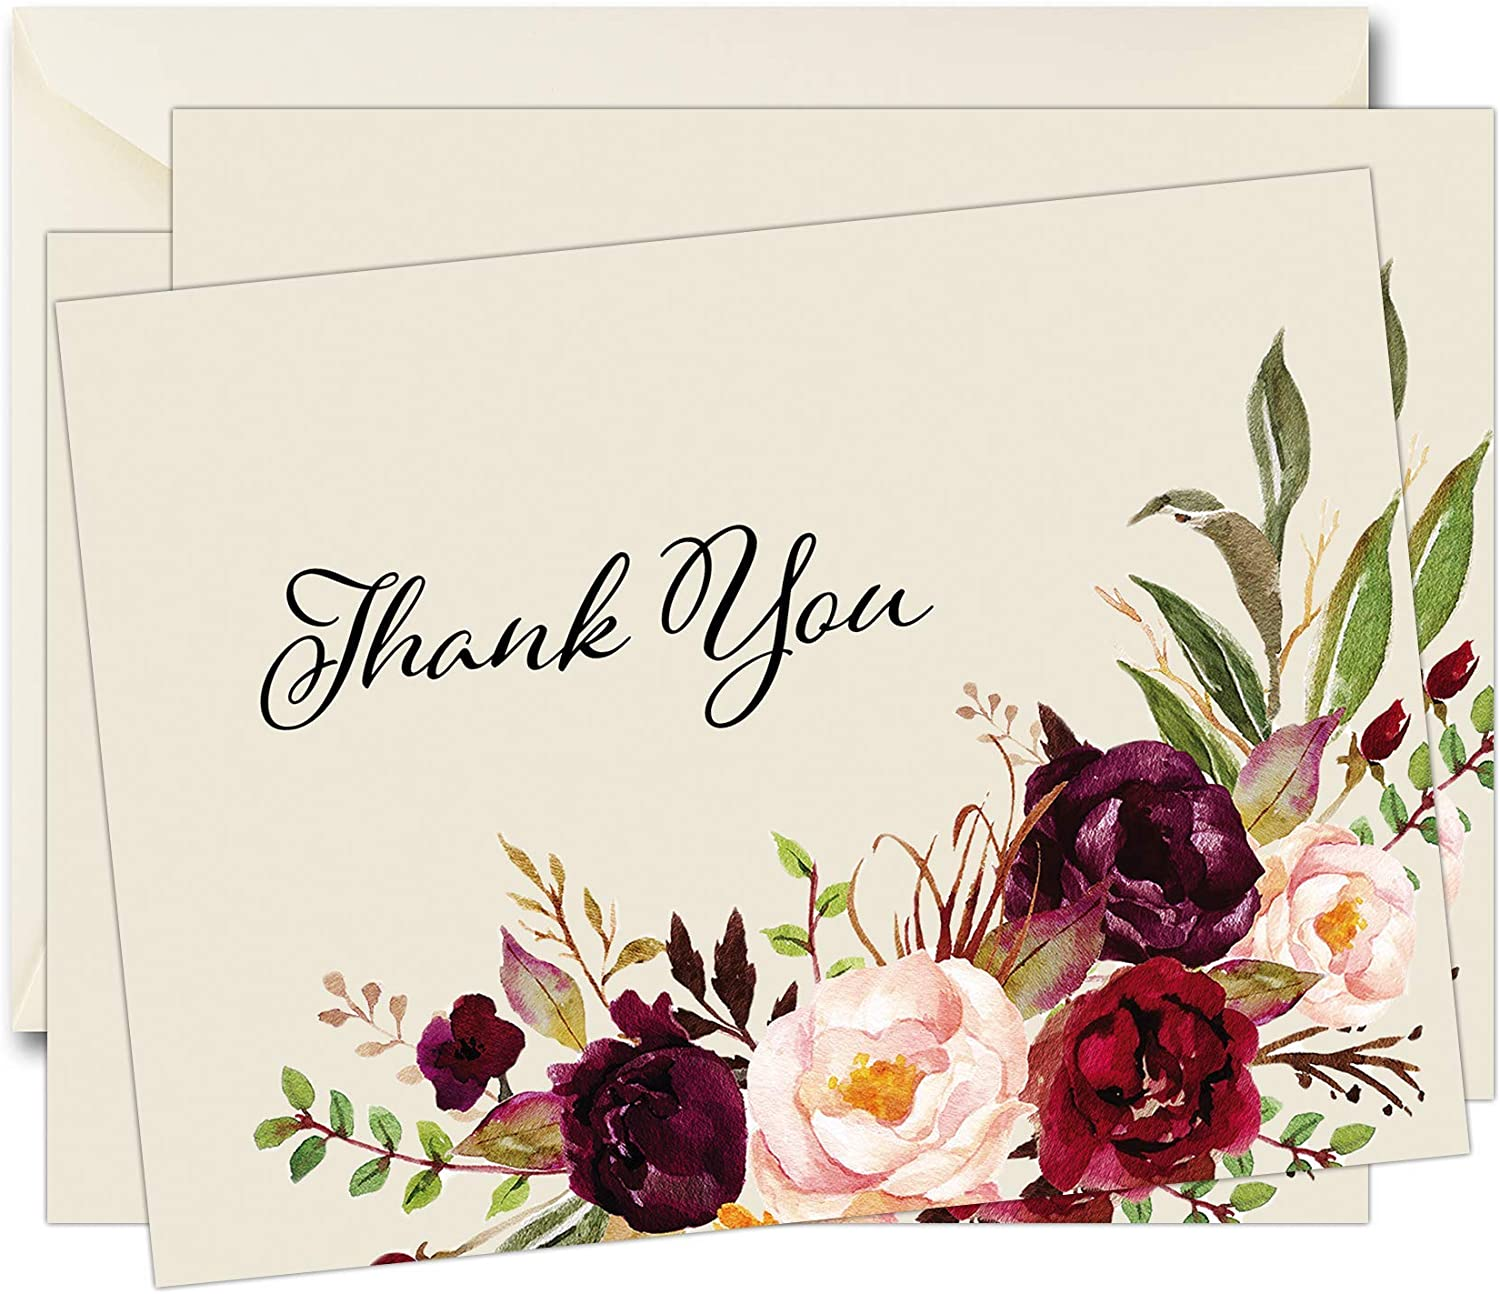 50 Funeral trust Sympathy Bereavement Weekly update Thank Cards With You Envelopes